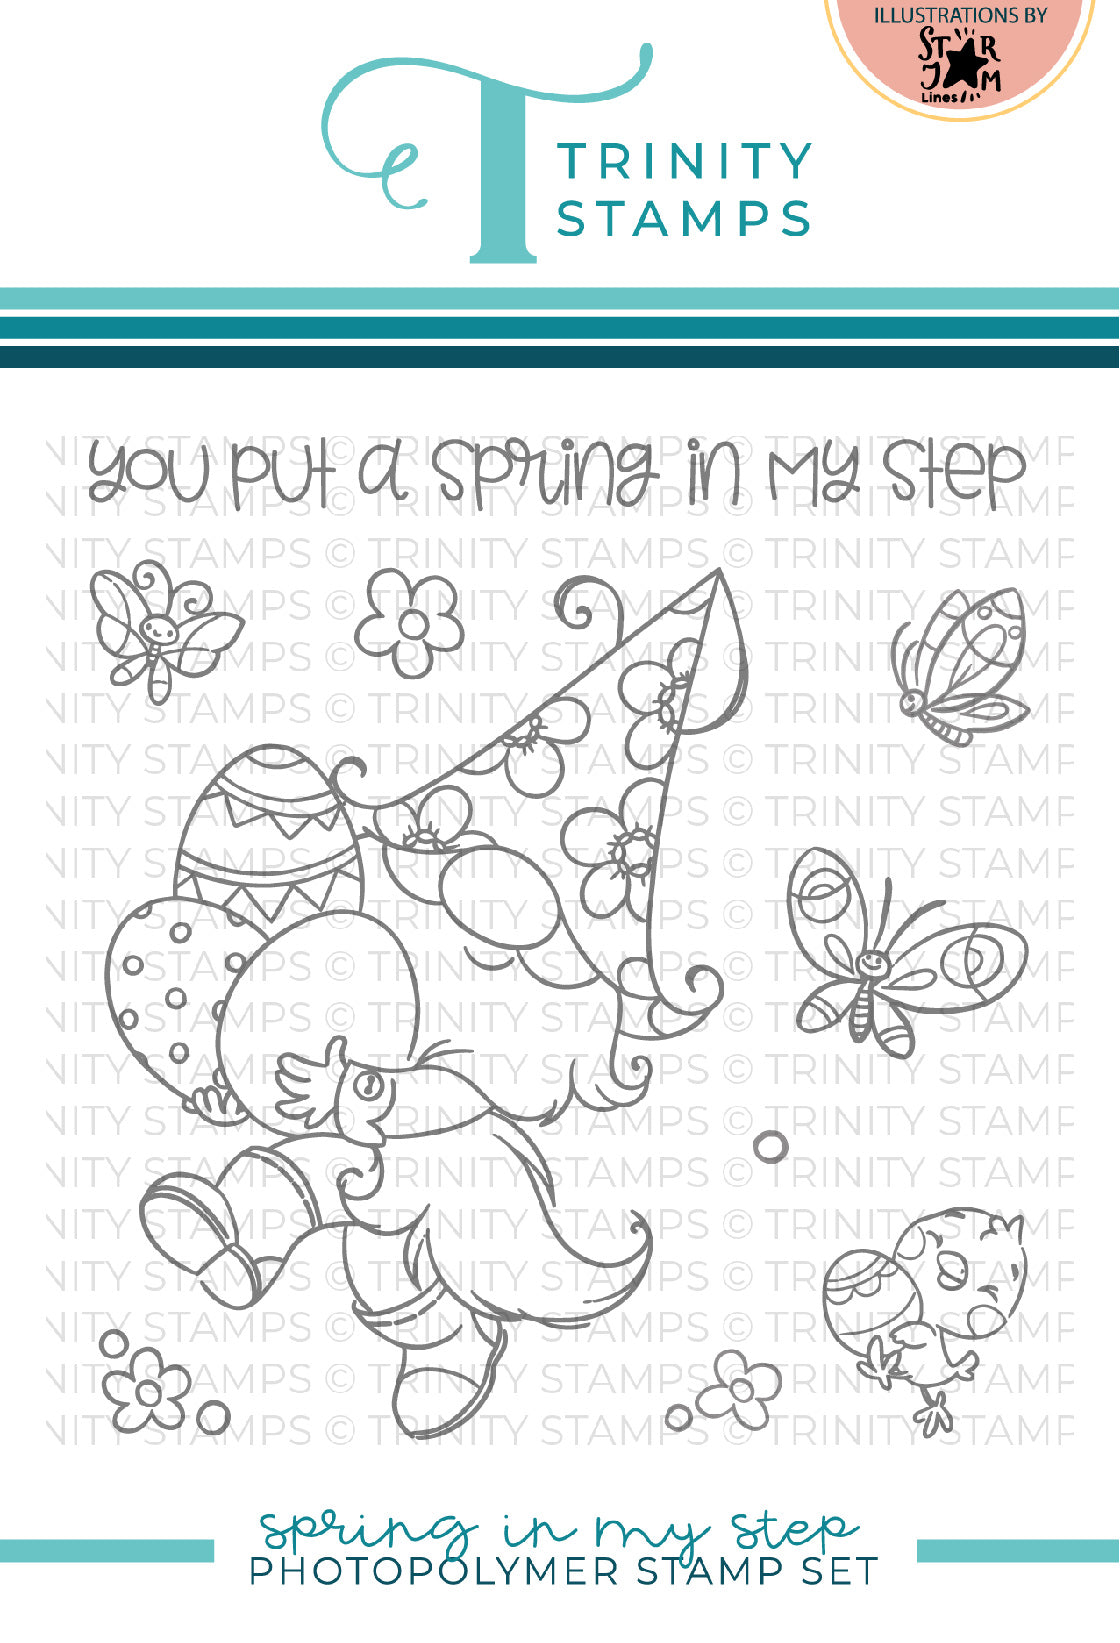 Spring in my Step 4x4 Stamp Set